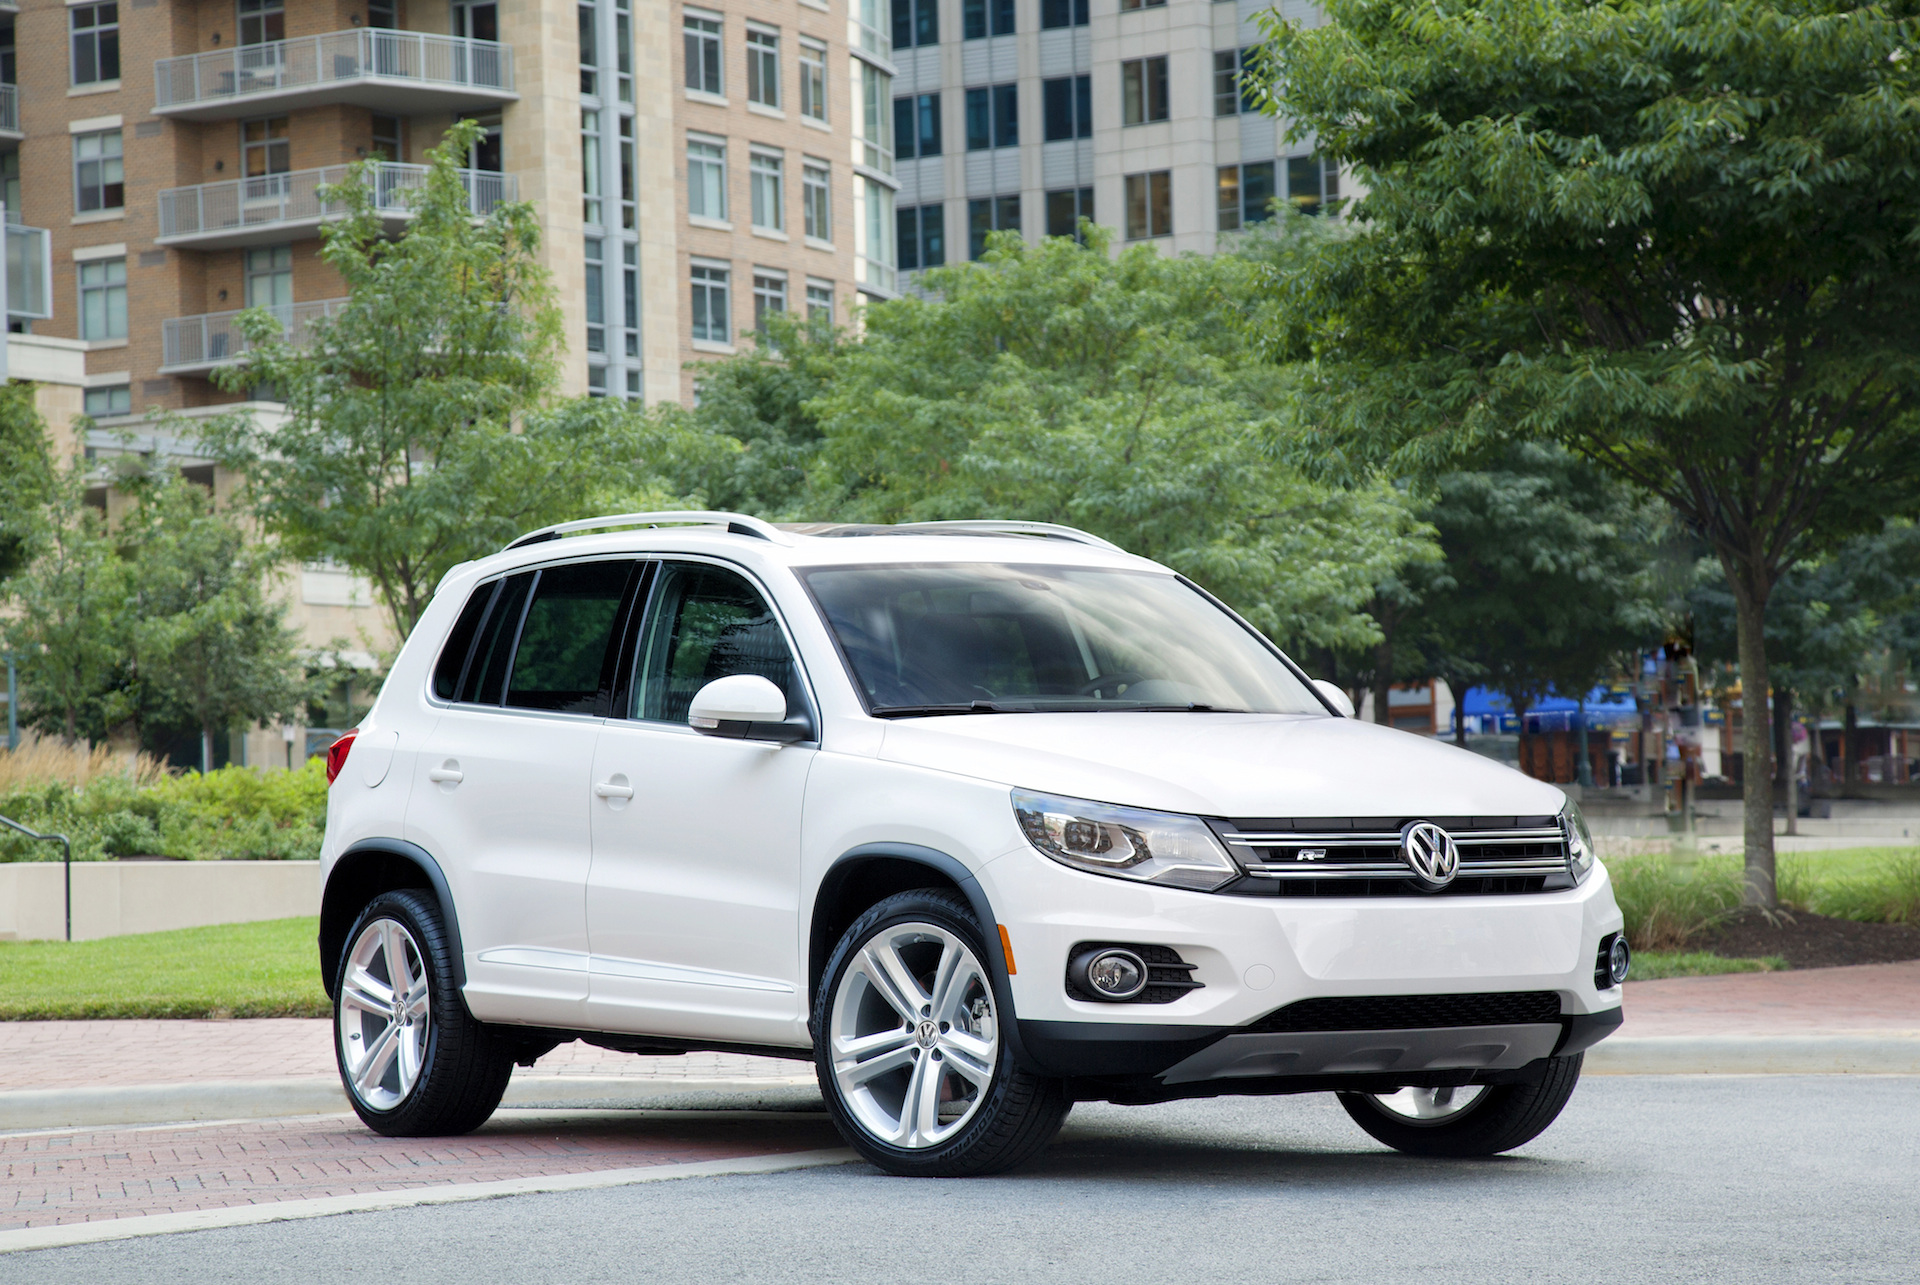 2015 Volkswagen Tiguan (VW) Review, Ratings, Specs, Prices ...